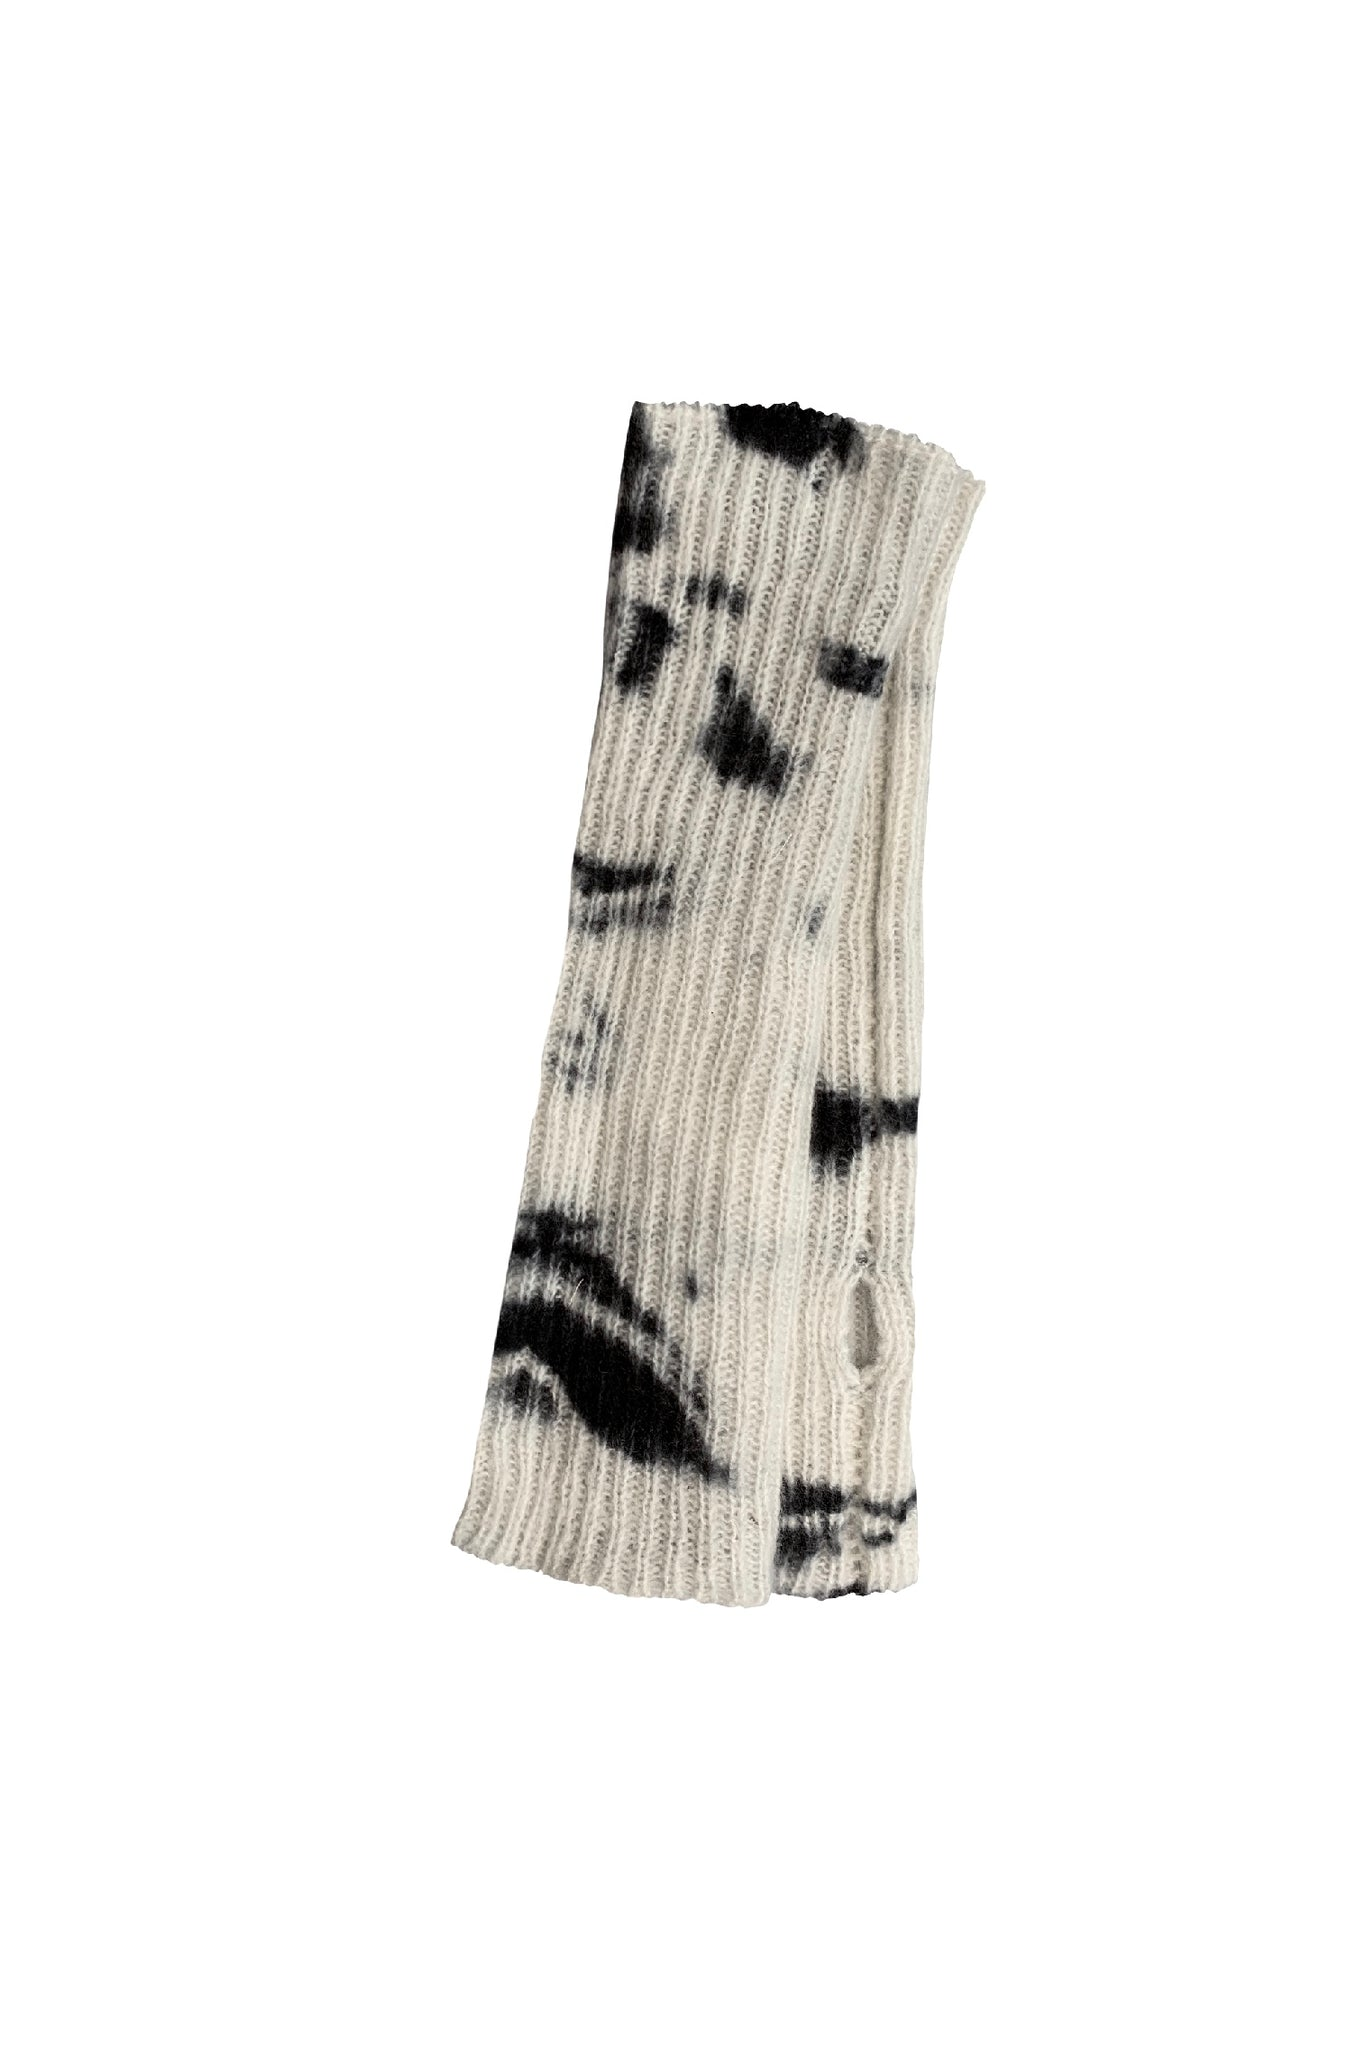 KES Lars Fingerless Long Glove - Black